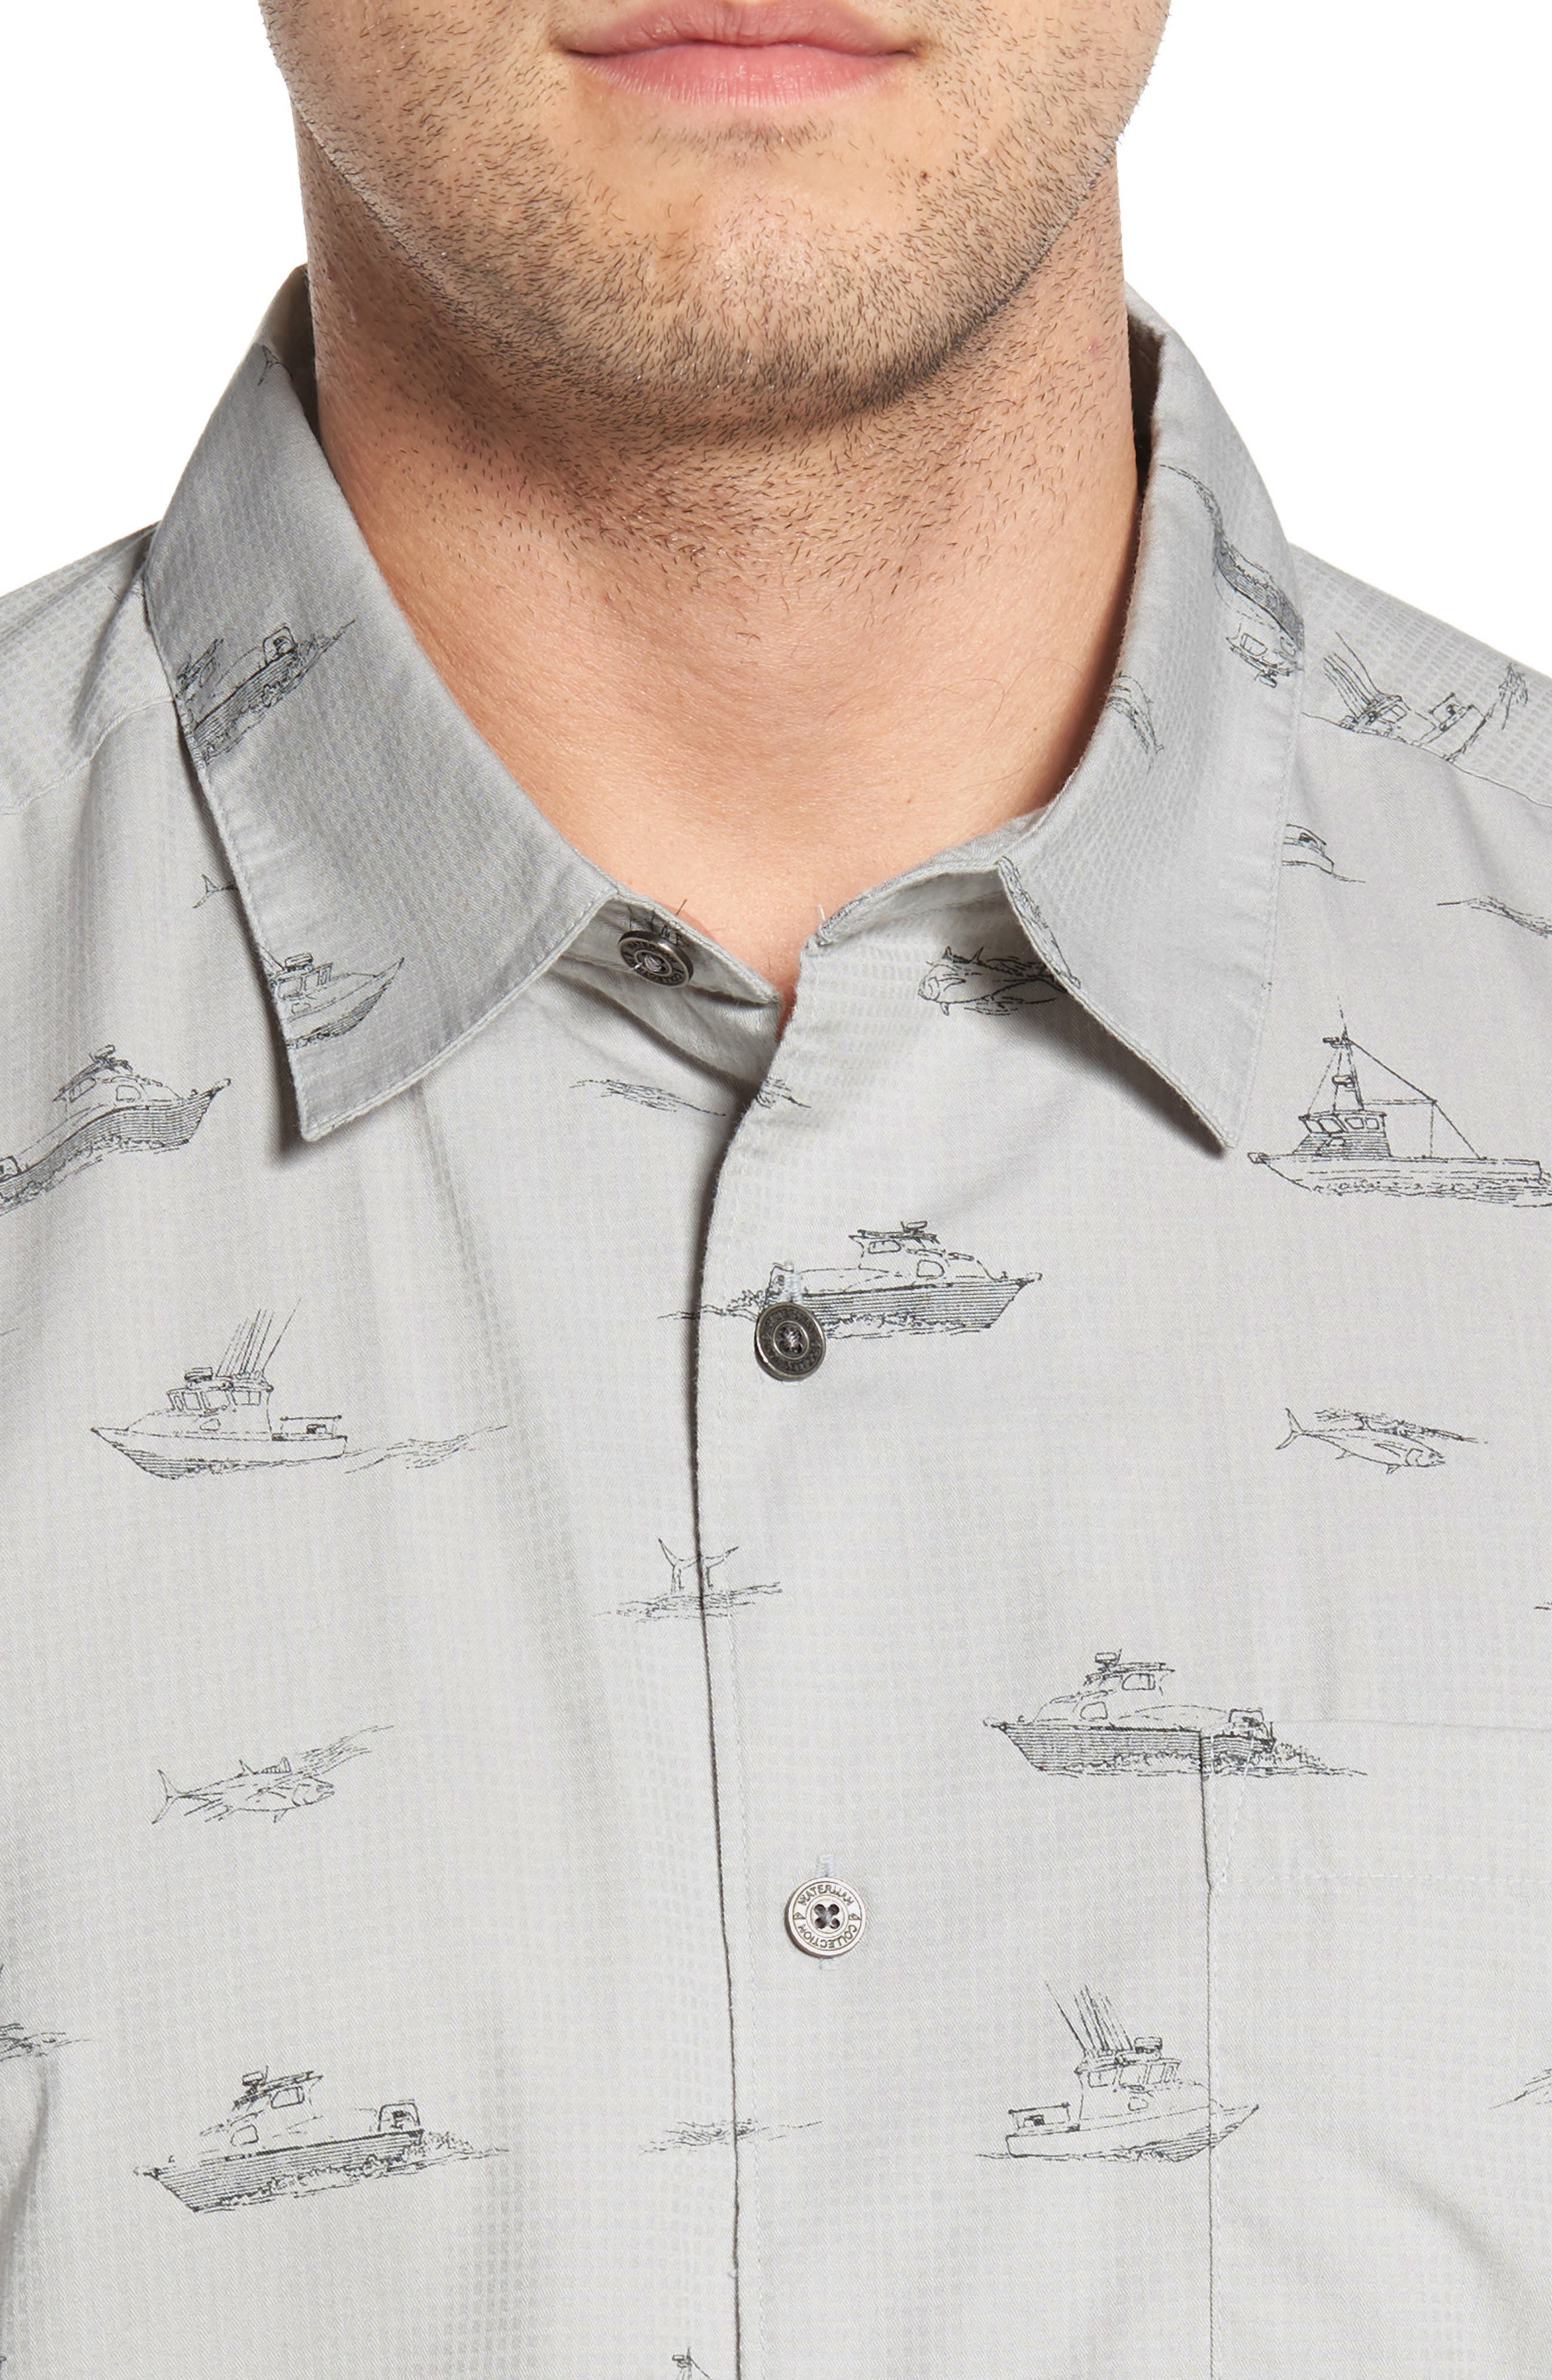 Channel Cruising Classic Fit Sport Shirt,                             Alternate thumbnail 4, color,                             HIGHRISE